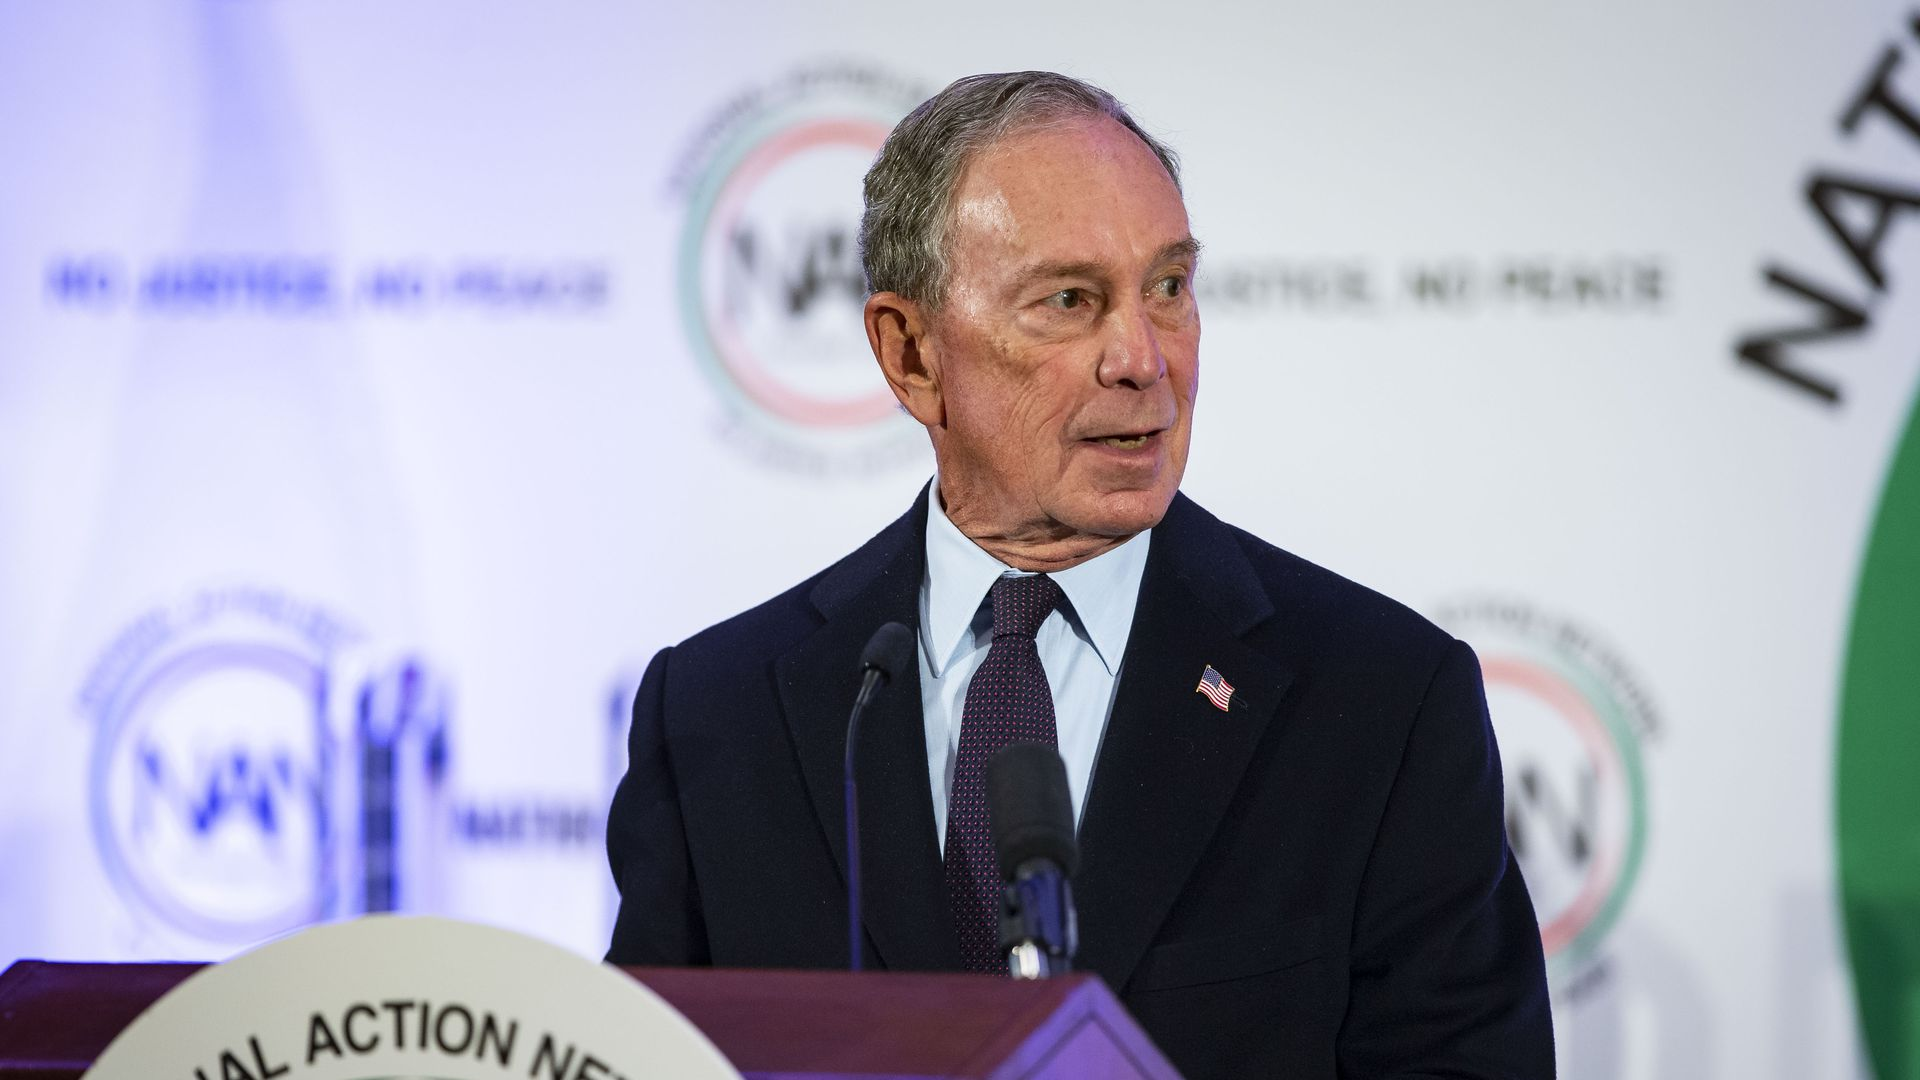 michael bloomberg - photo #26